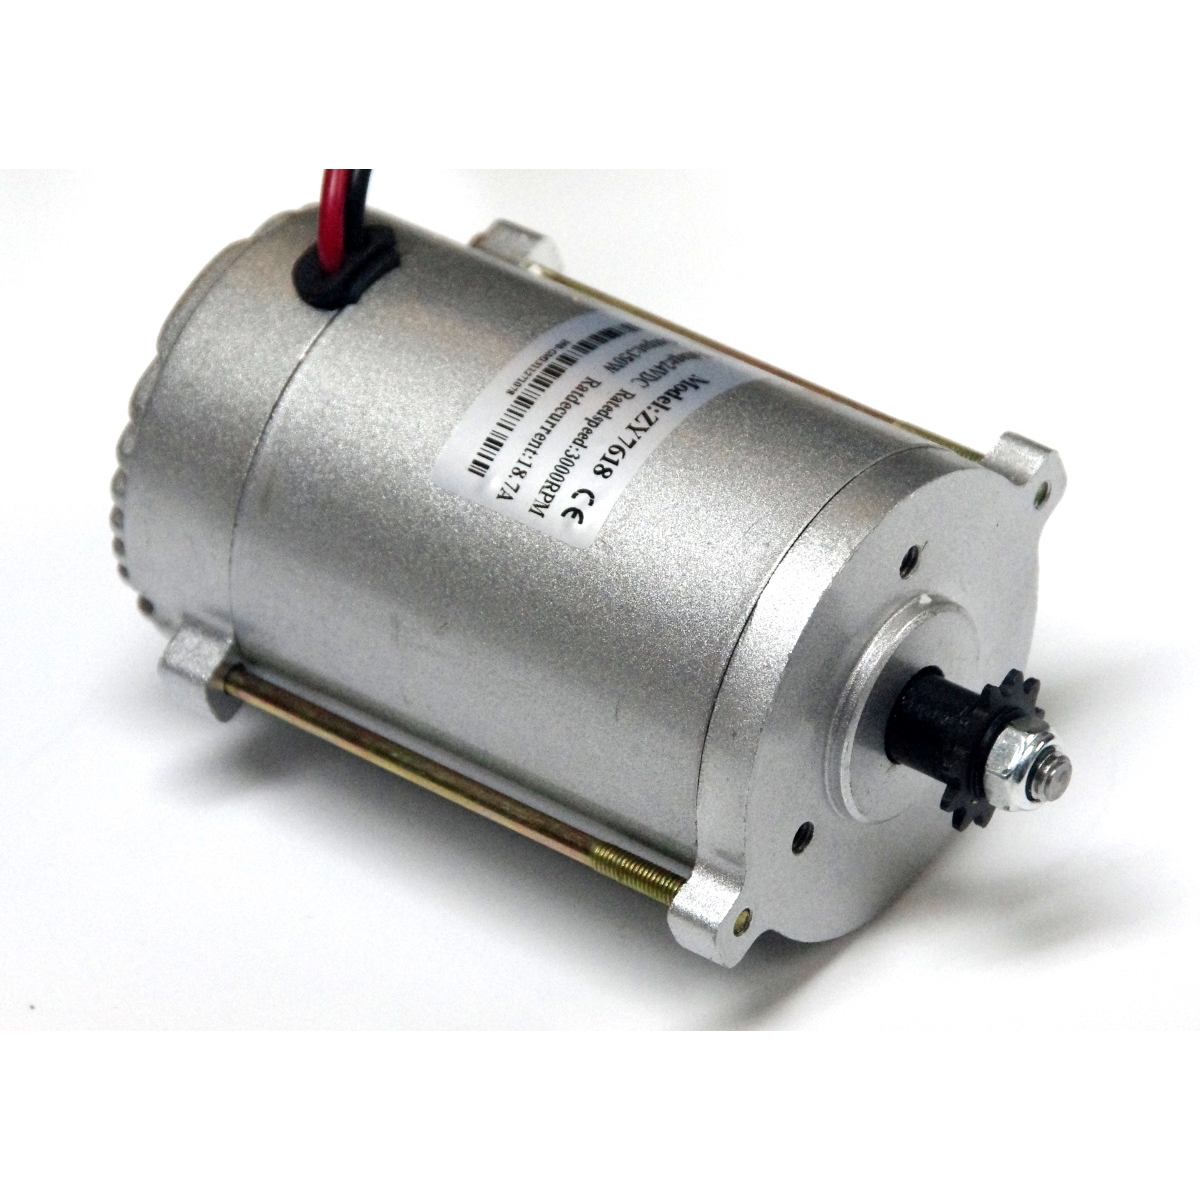 Unite my7618 dc motor 600w 36v 3300rpm for What is dc motor